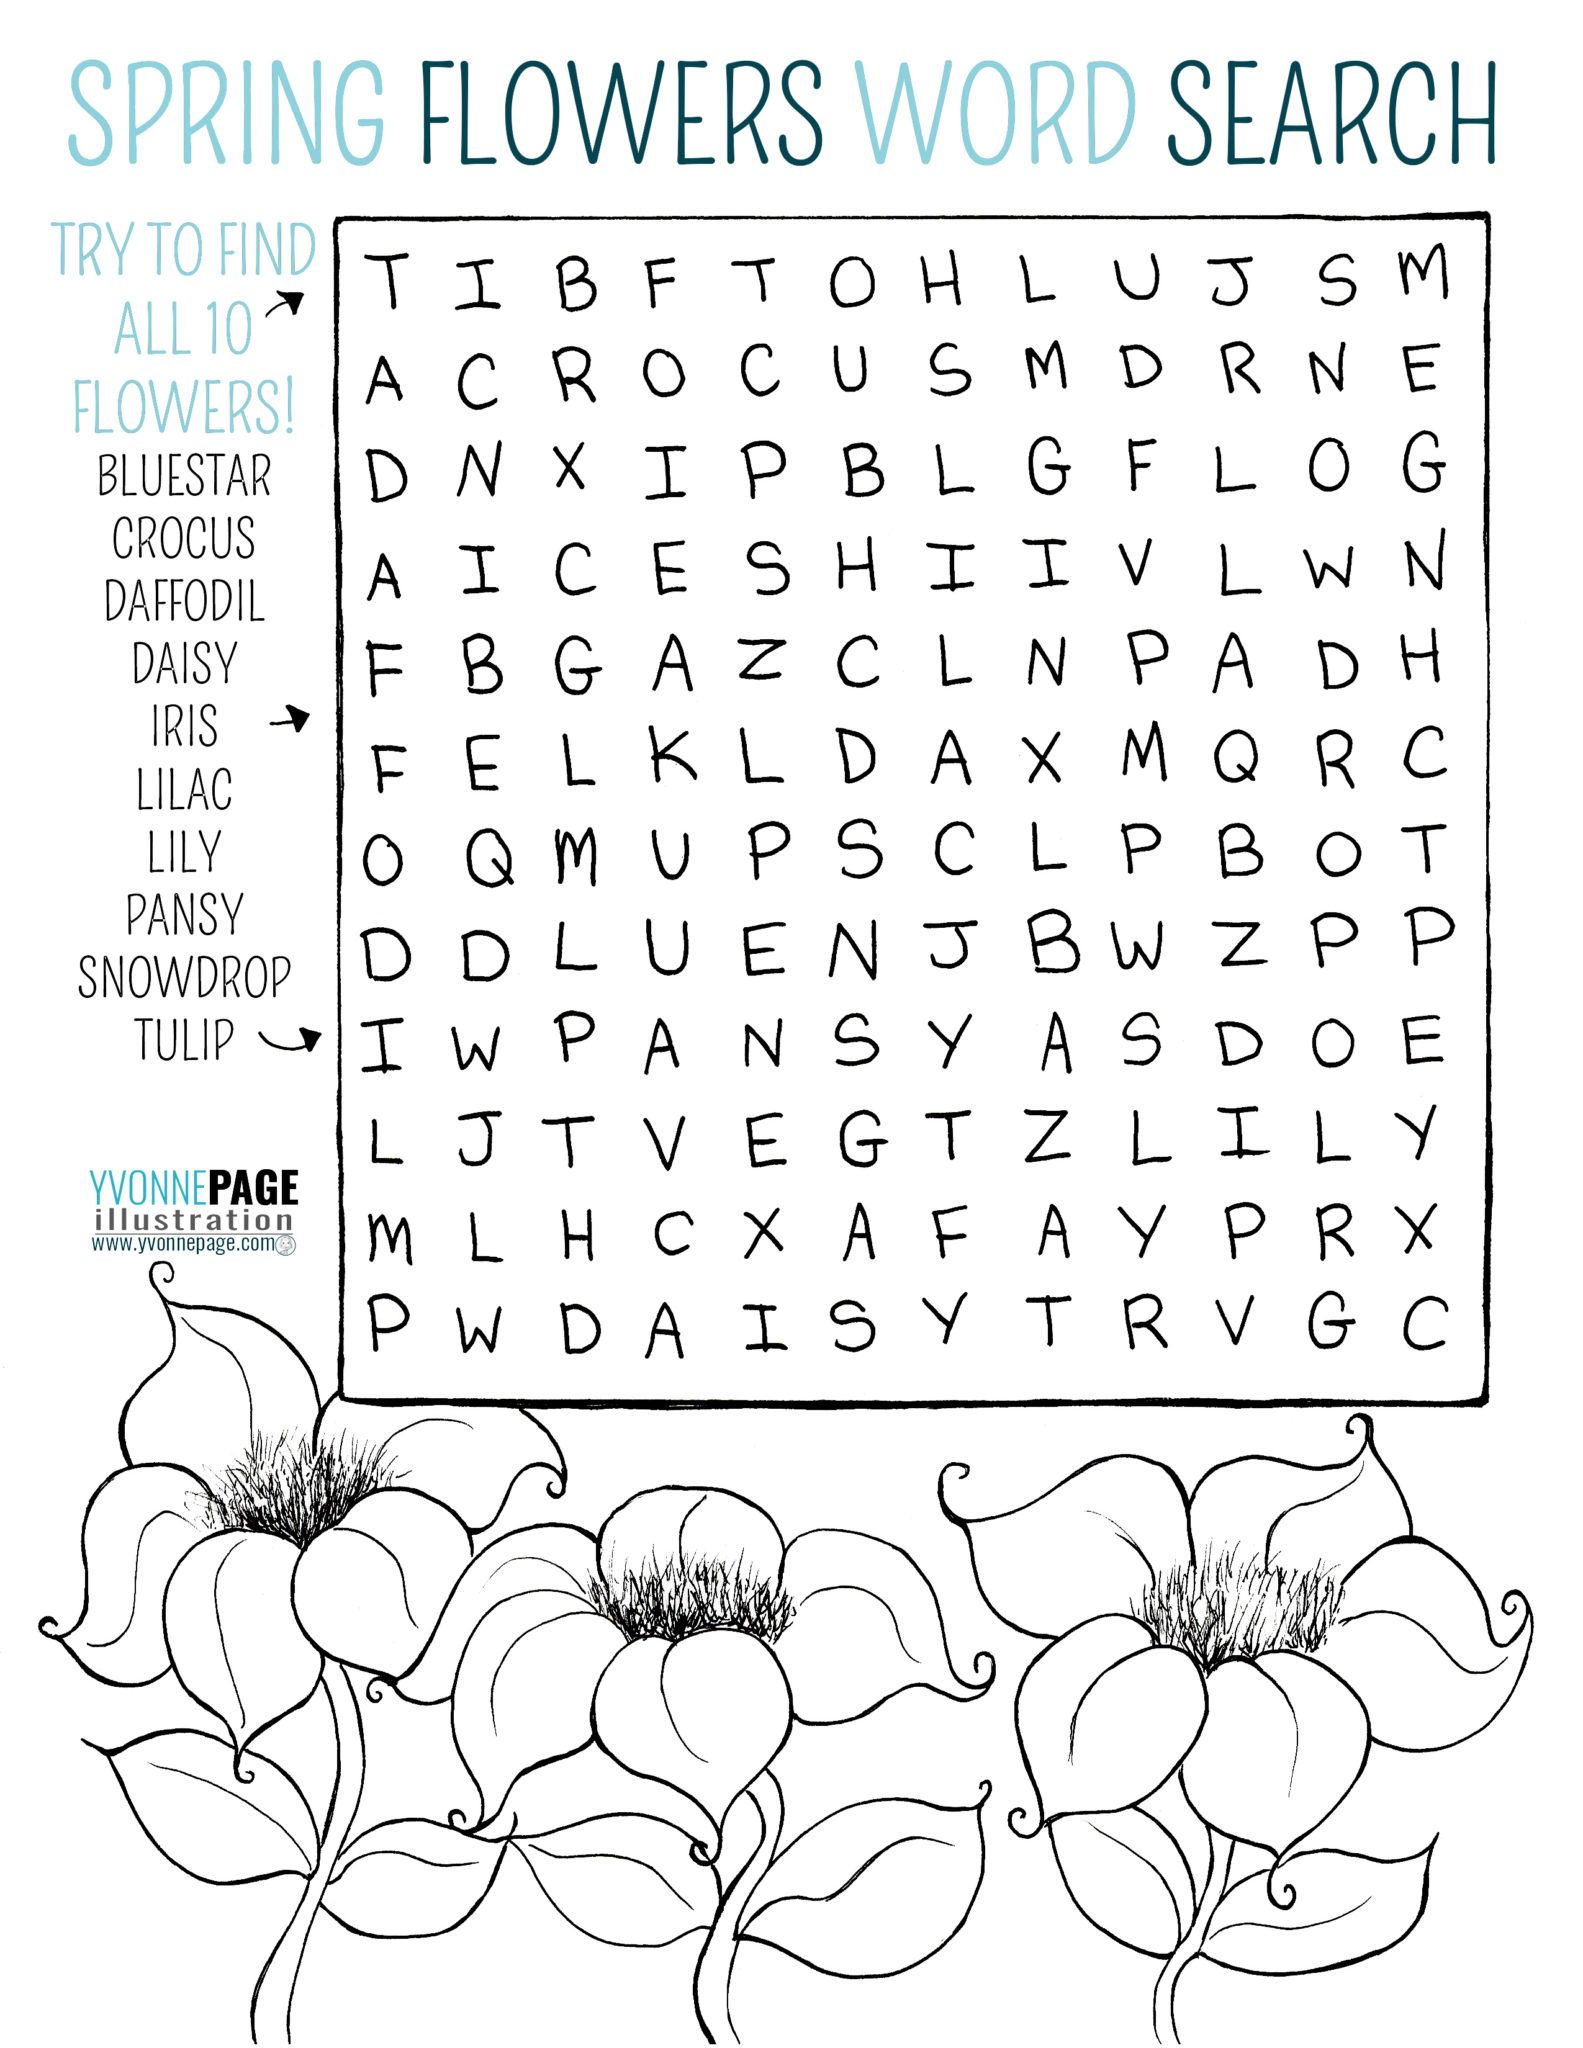 Spring flowers word search. Find all ten flowers then